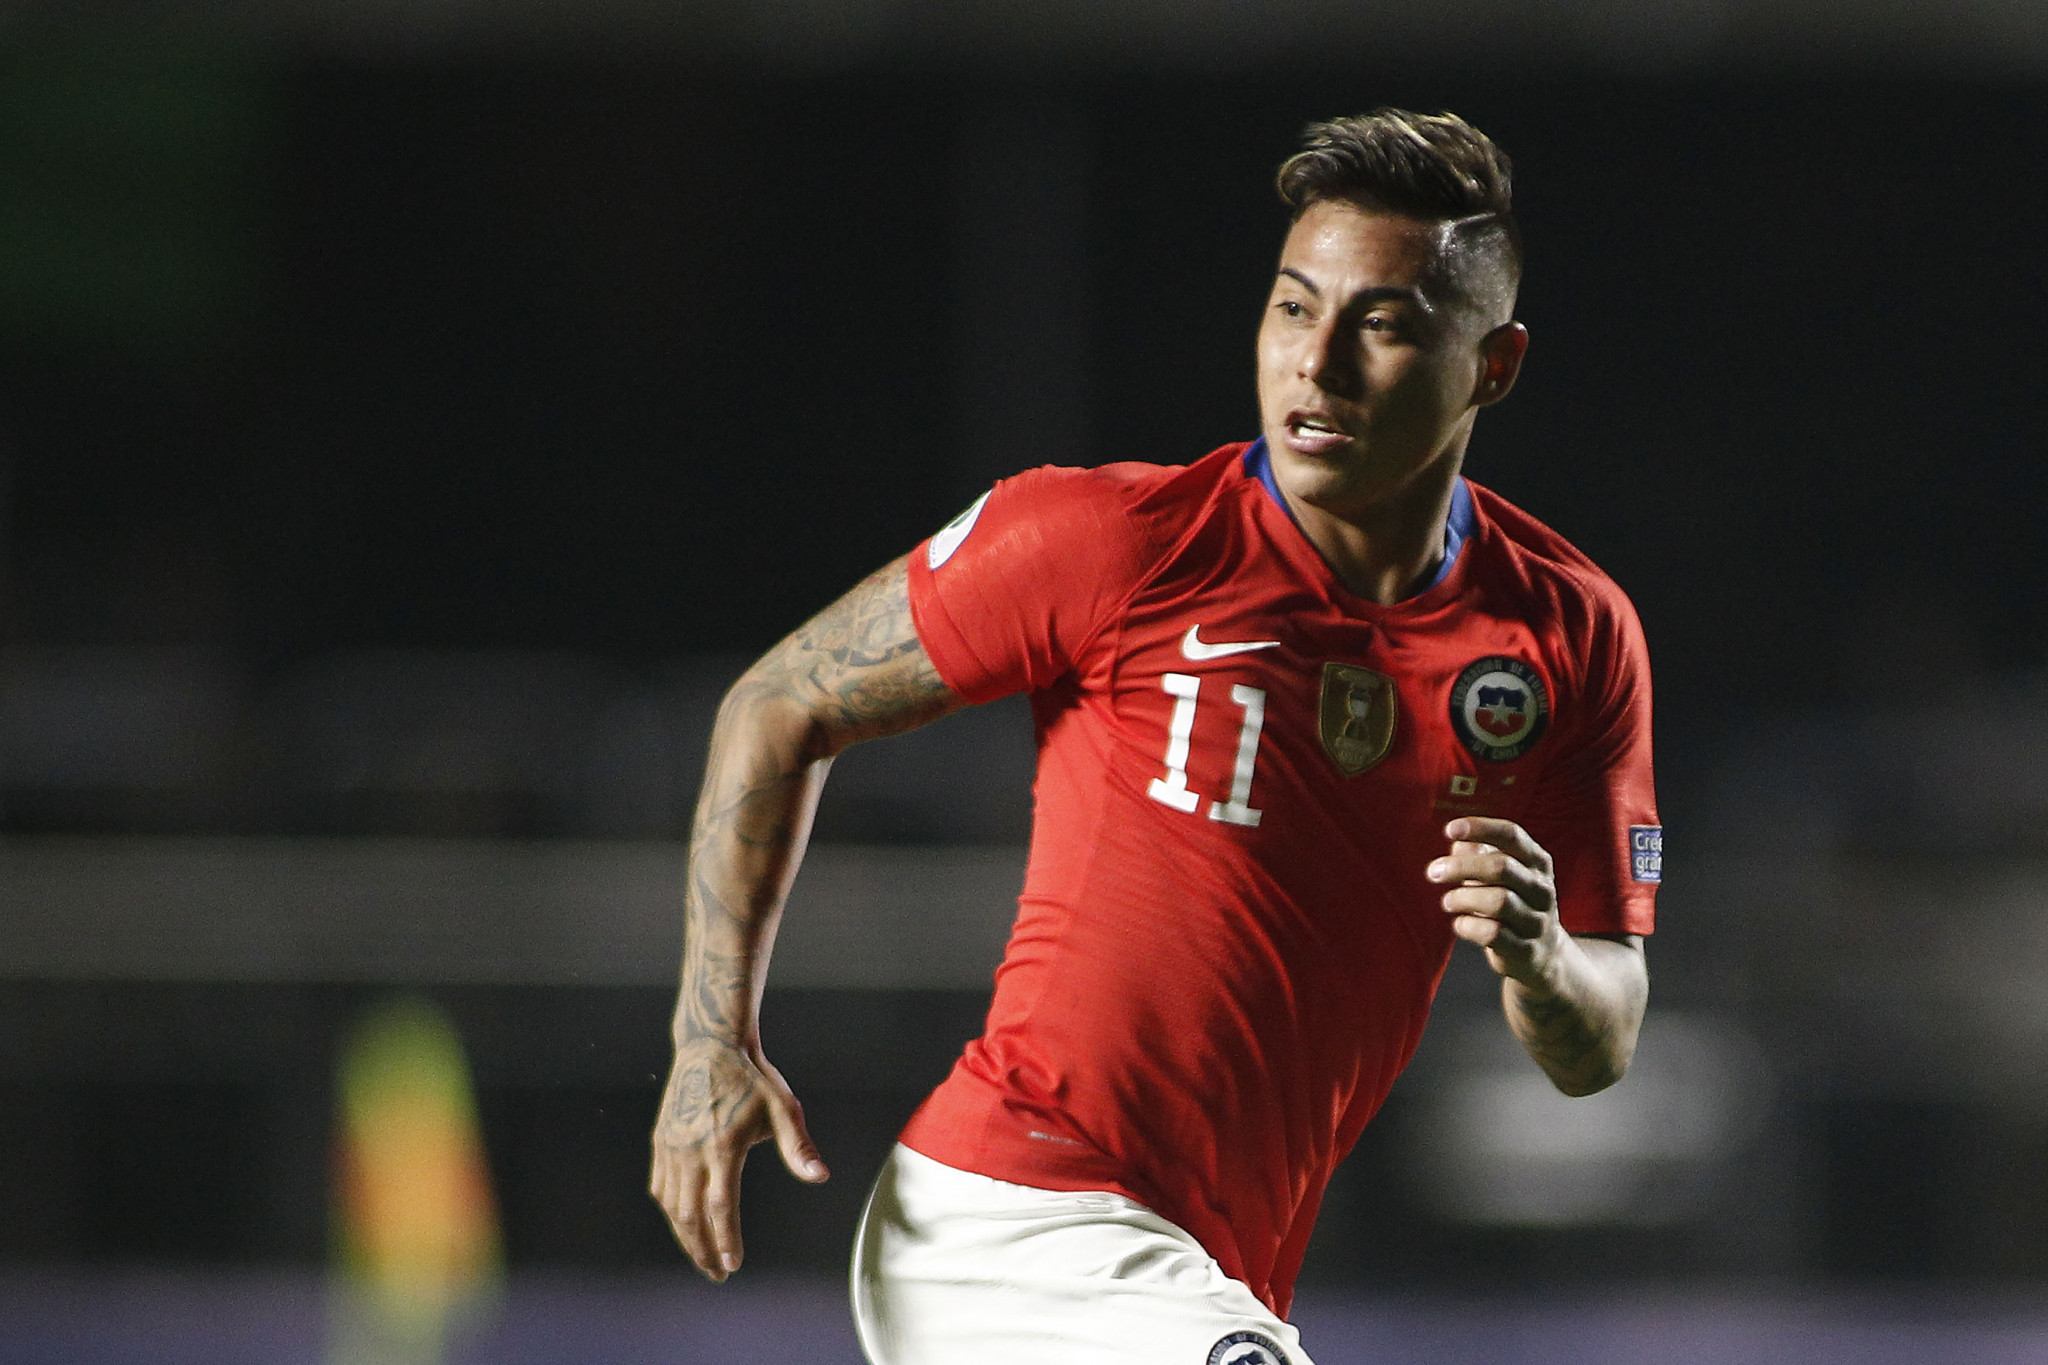 Striker Eduardo Vargas scored twice, becoming Chile's top scorer in Copa America history ©Getty Images